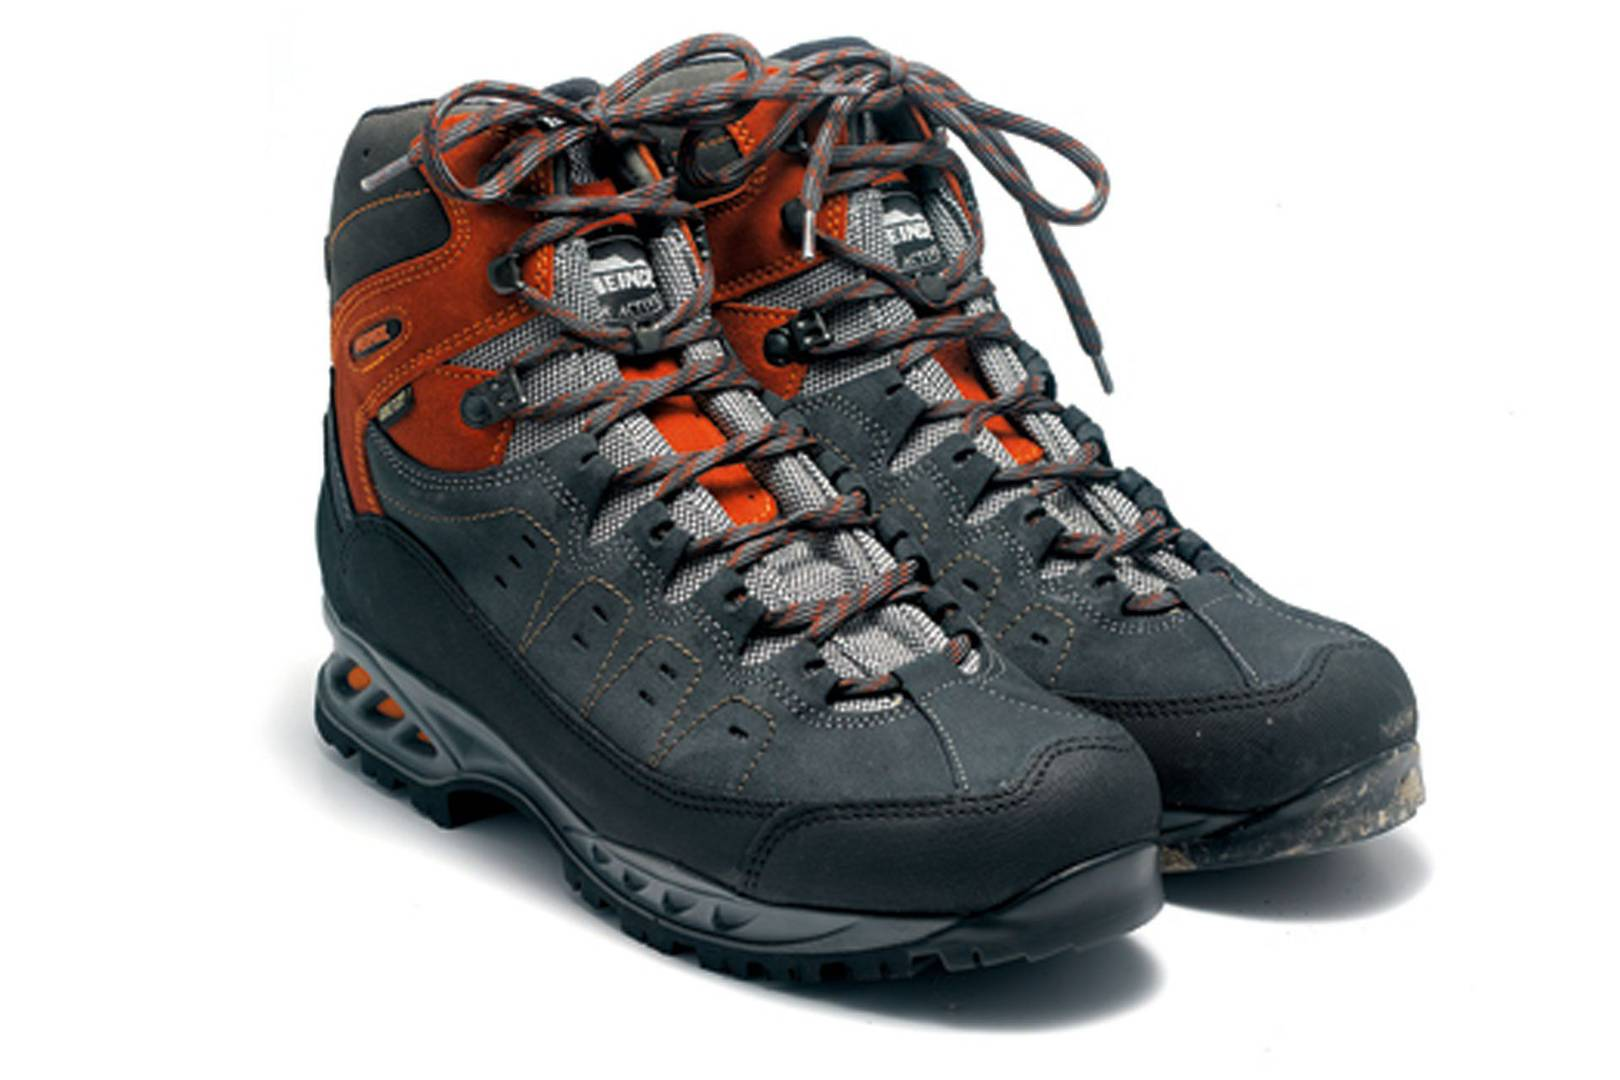 save off f9c3a b3a5d Tested: hiking footwear for tough terrains - Hiking shoe ...